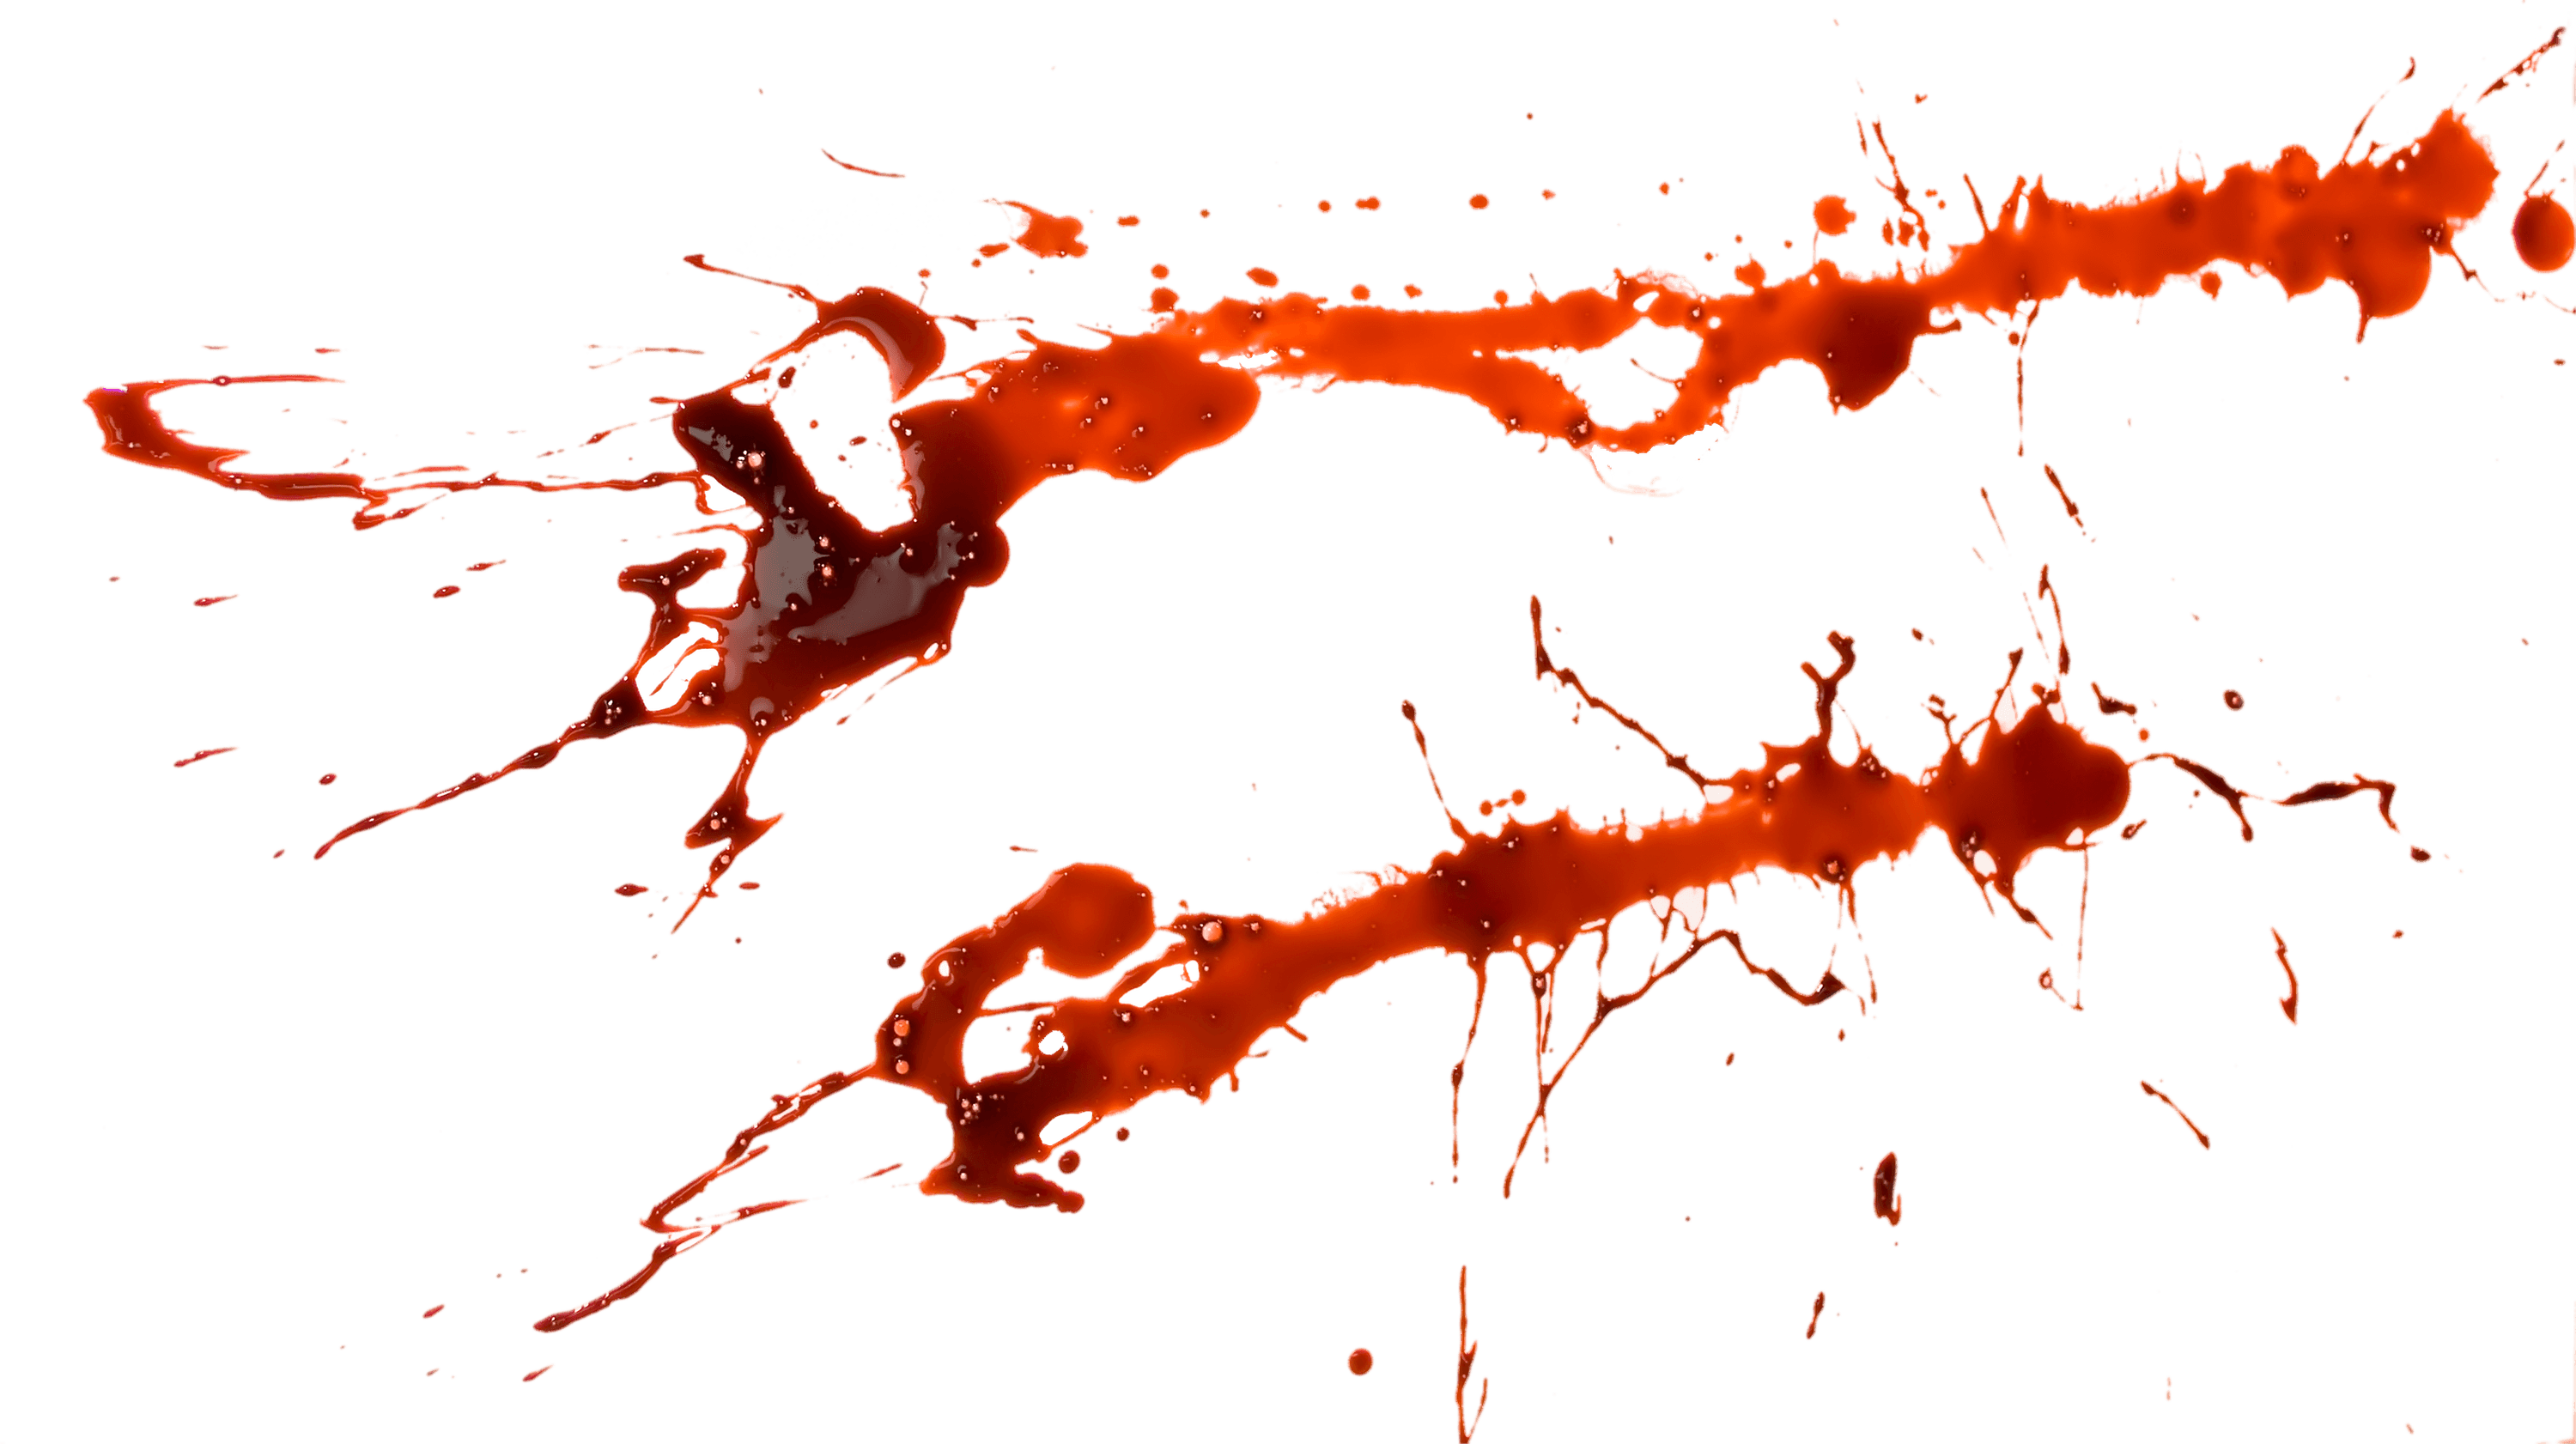 Blood splatter png transparent background. Stain stickpng